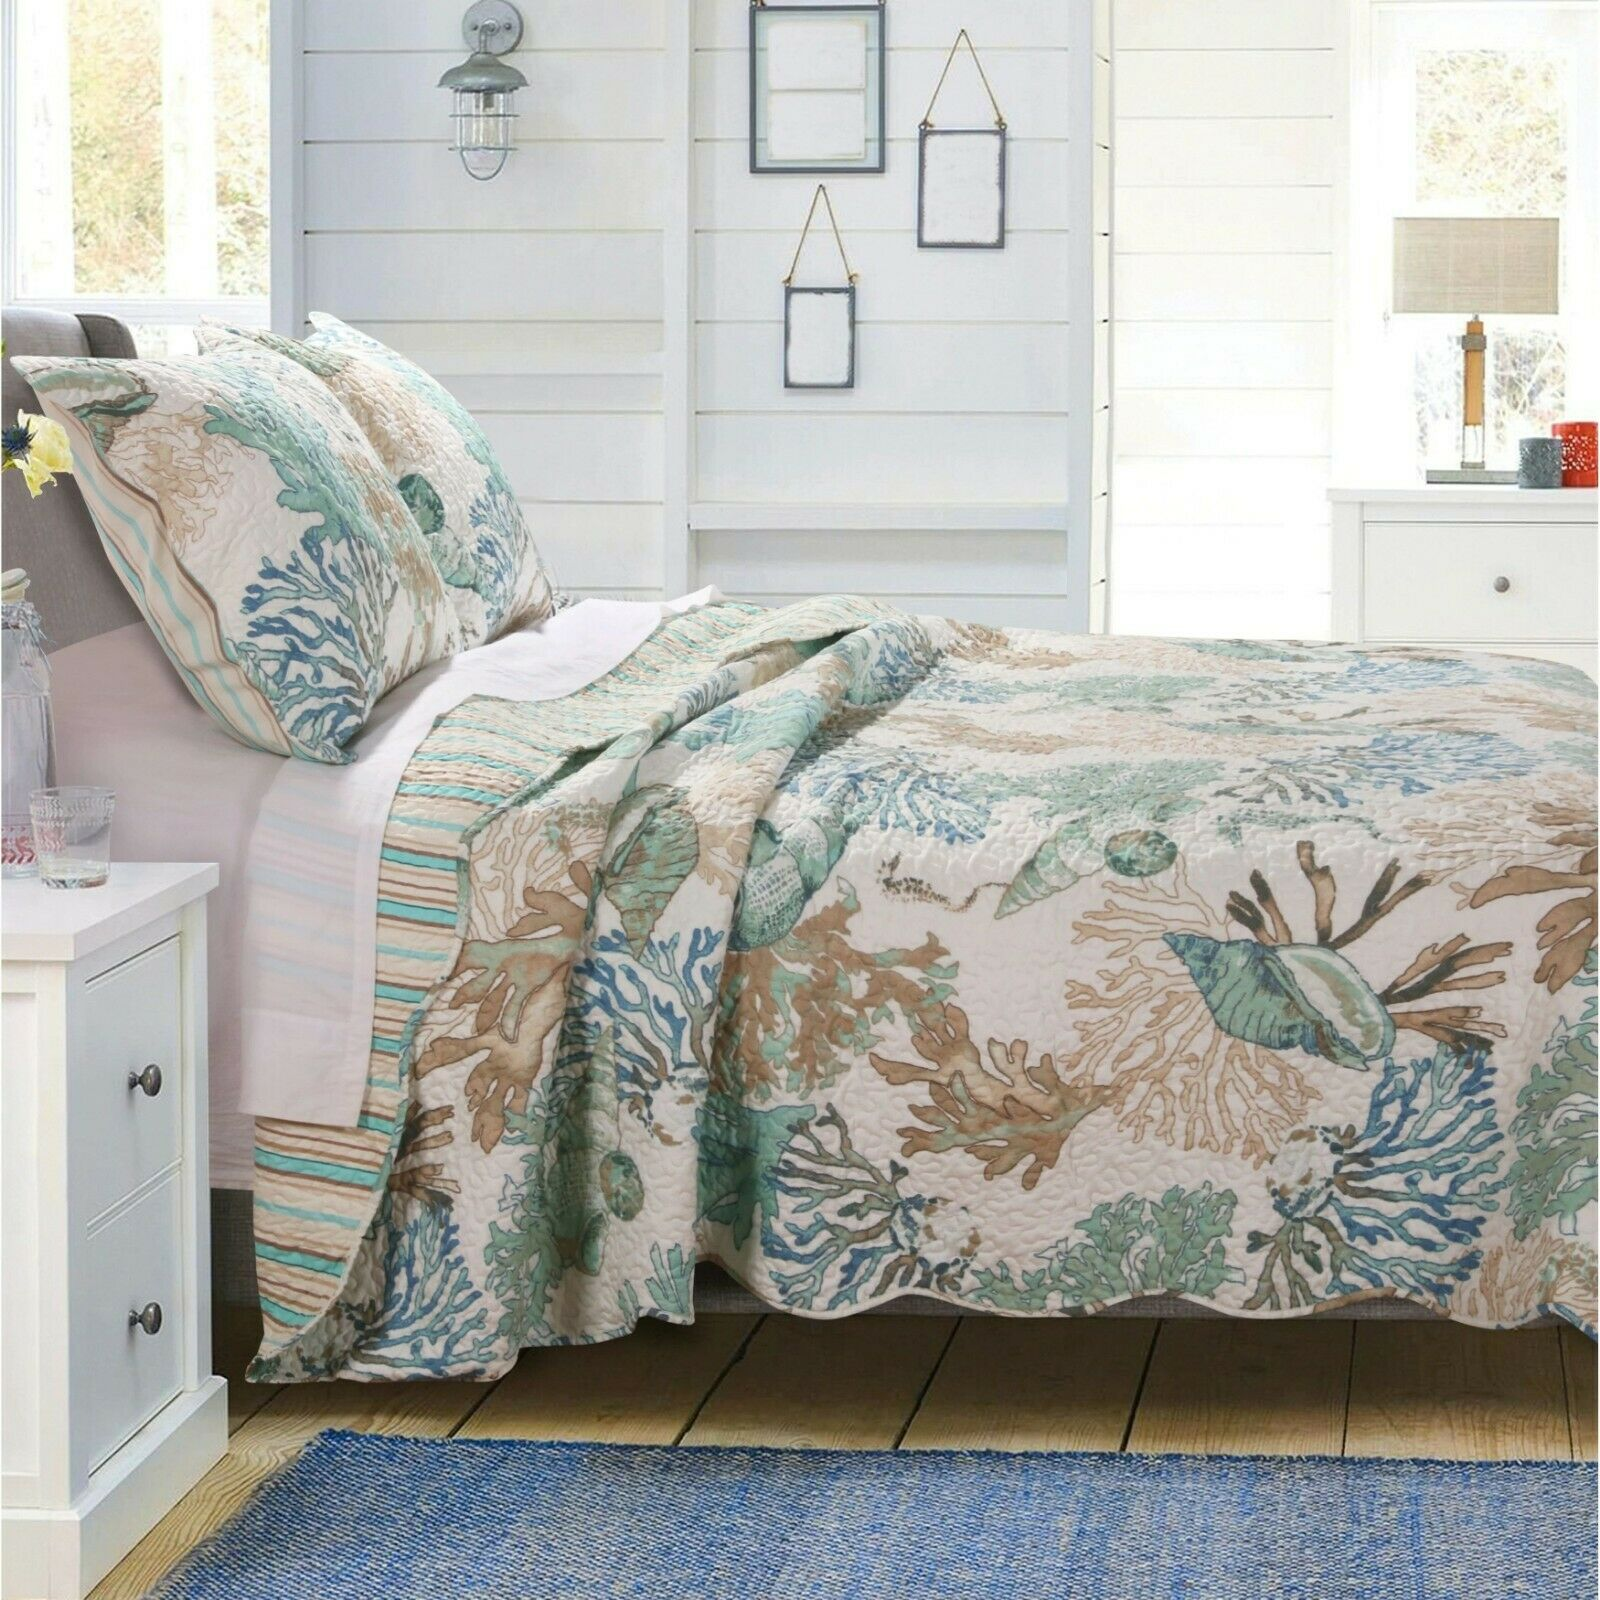 BEAUTIFUL TROPICAL BEACH Blau AQUA TEAL CORAL COASTAL SEA SHELL SAND QUILT SET